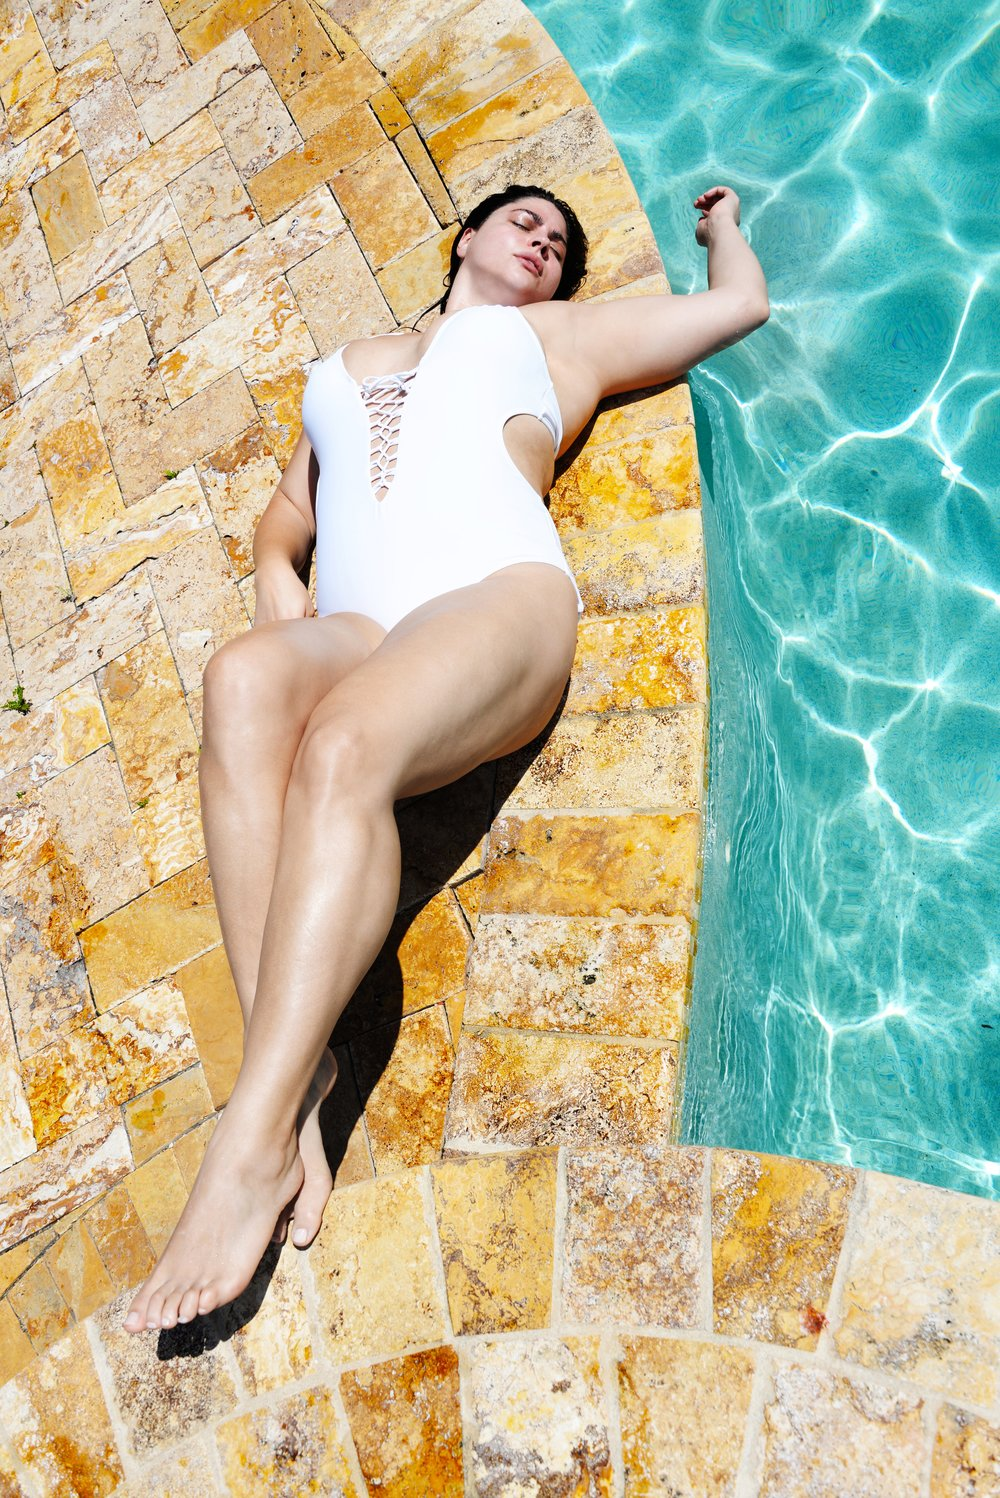 Swimsuit from  Ashley Graham x Swimsuits for All , photo by  Will Shreve